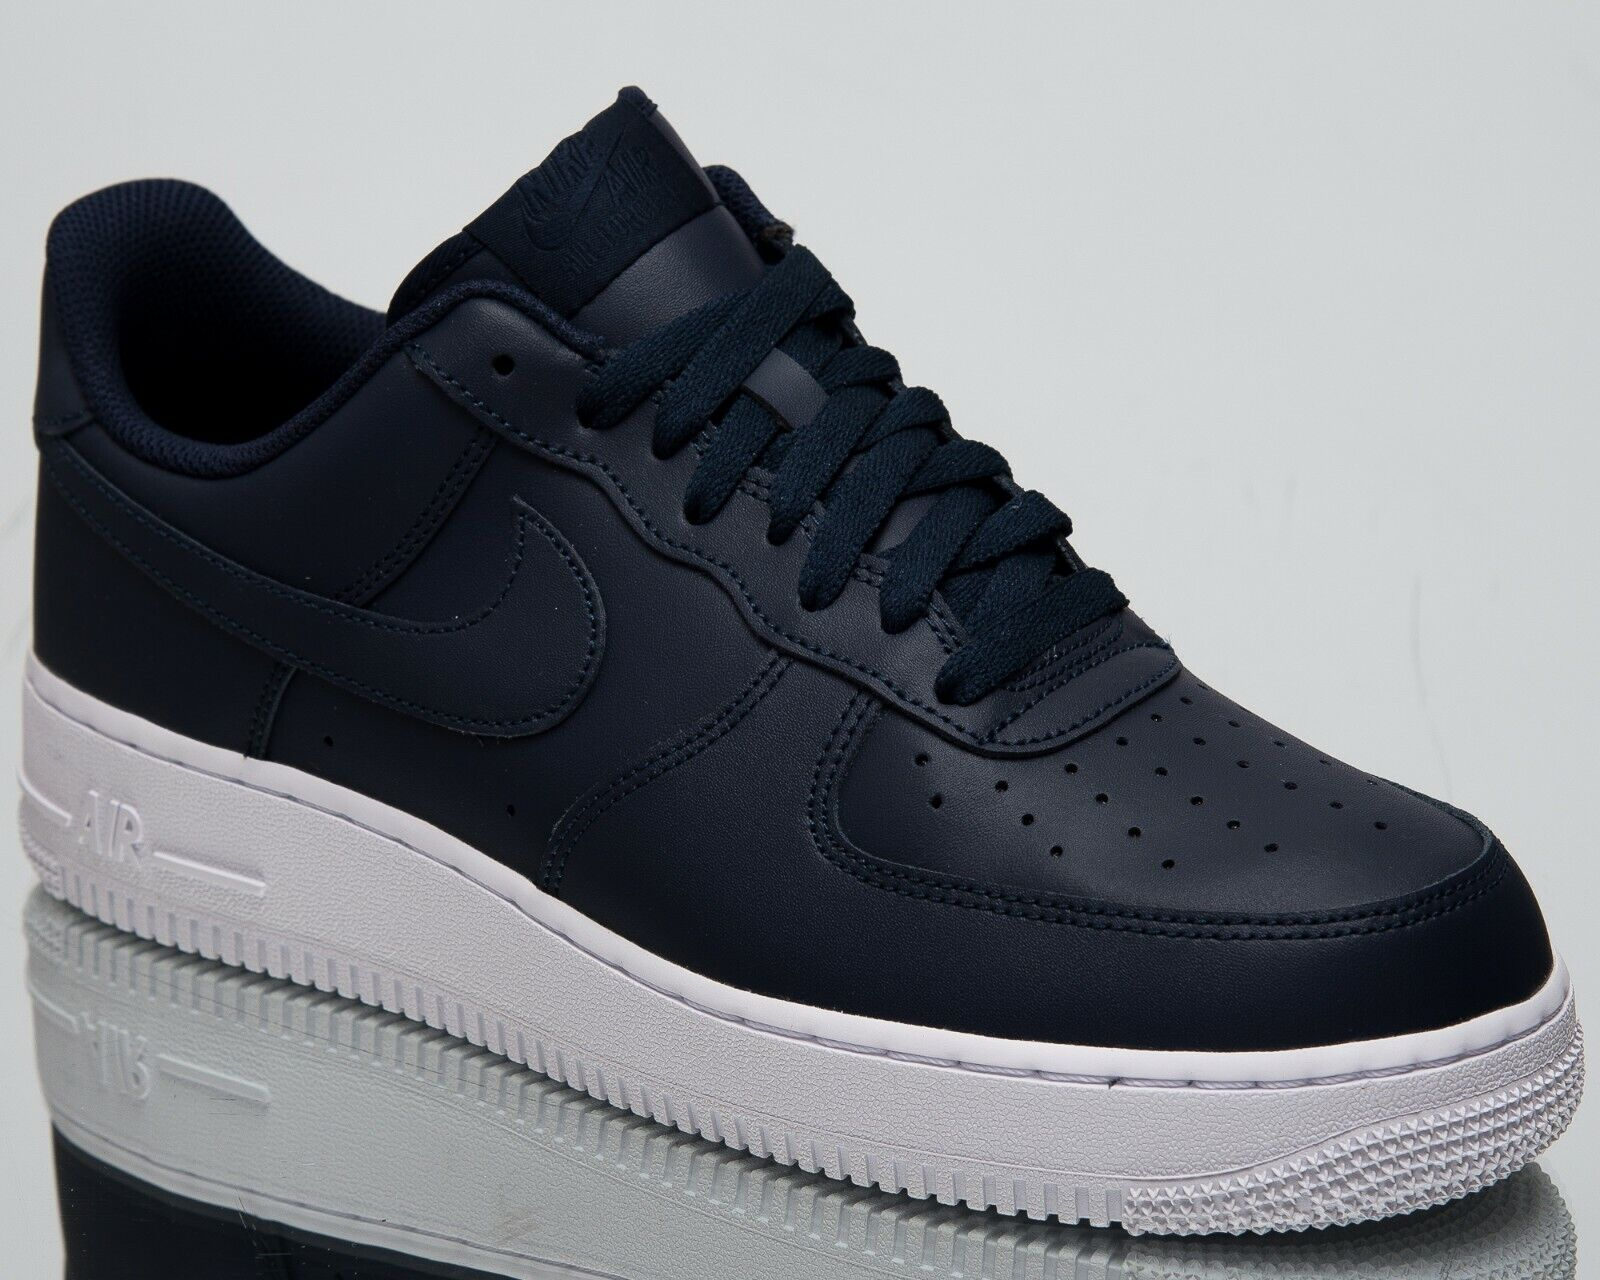 Nike Air Force 1 '07 New Men's Lifestyle shoes Obsidian White Low Top AA4083-400